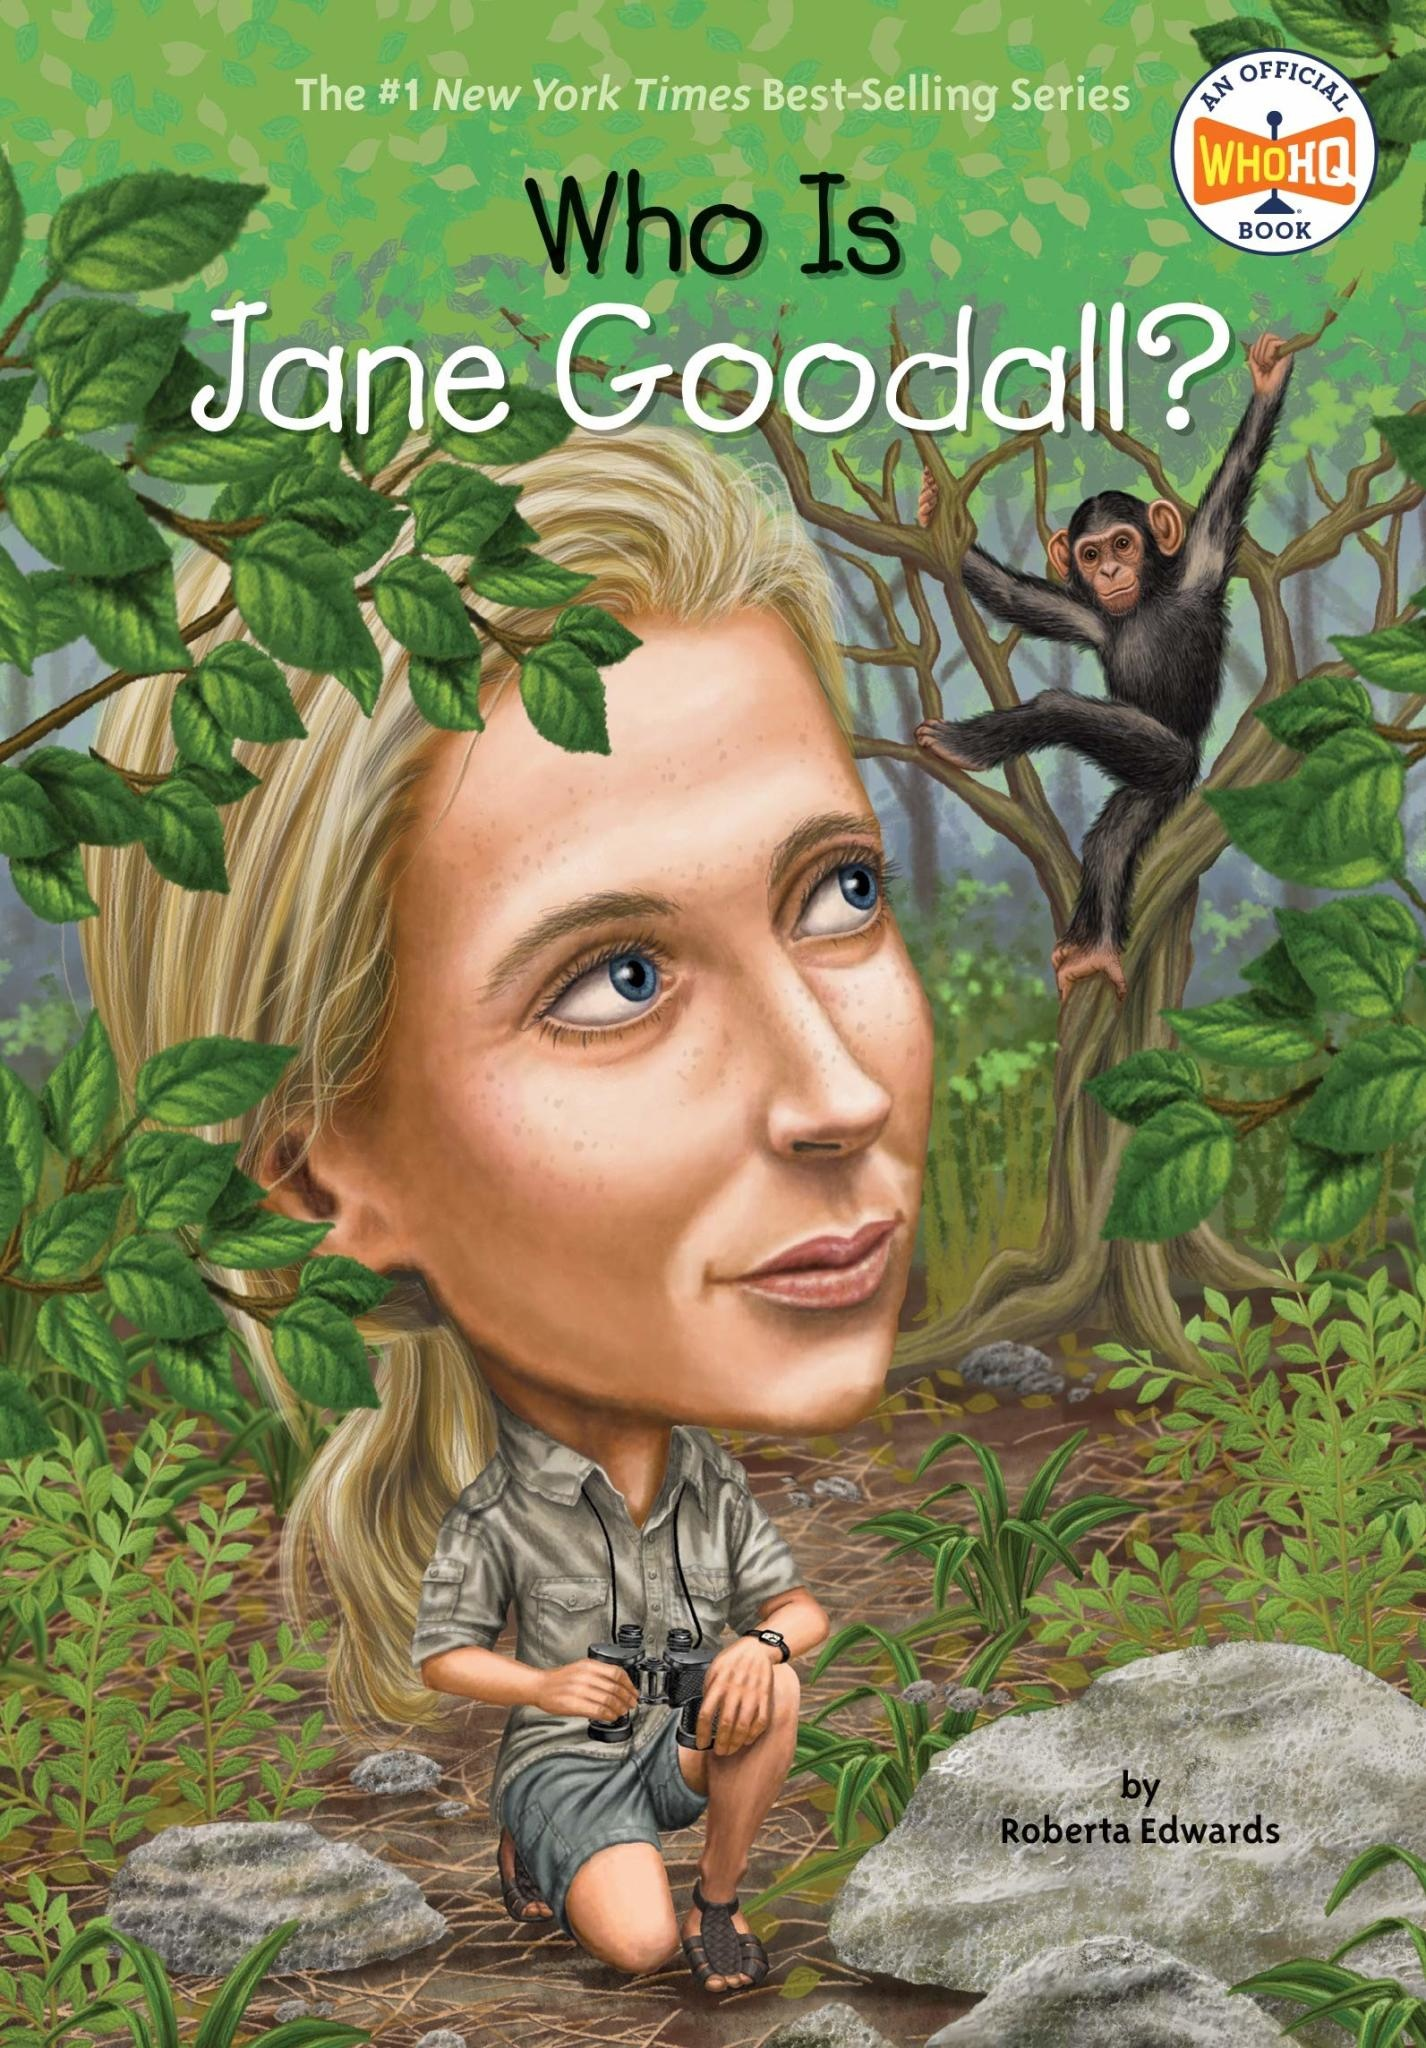 Who What Where Who Is Jane Goodall? Paperback Book